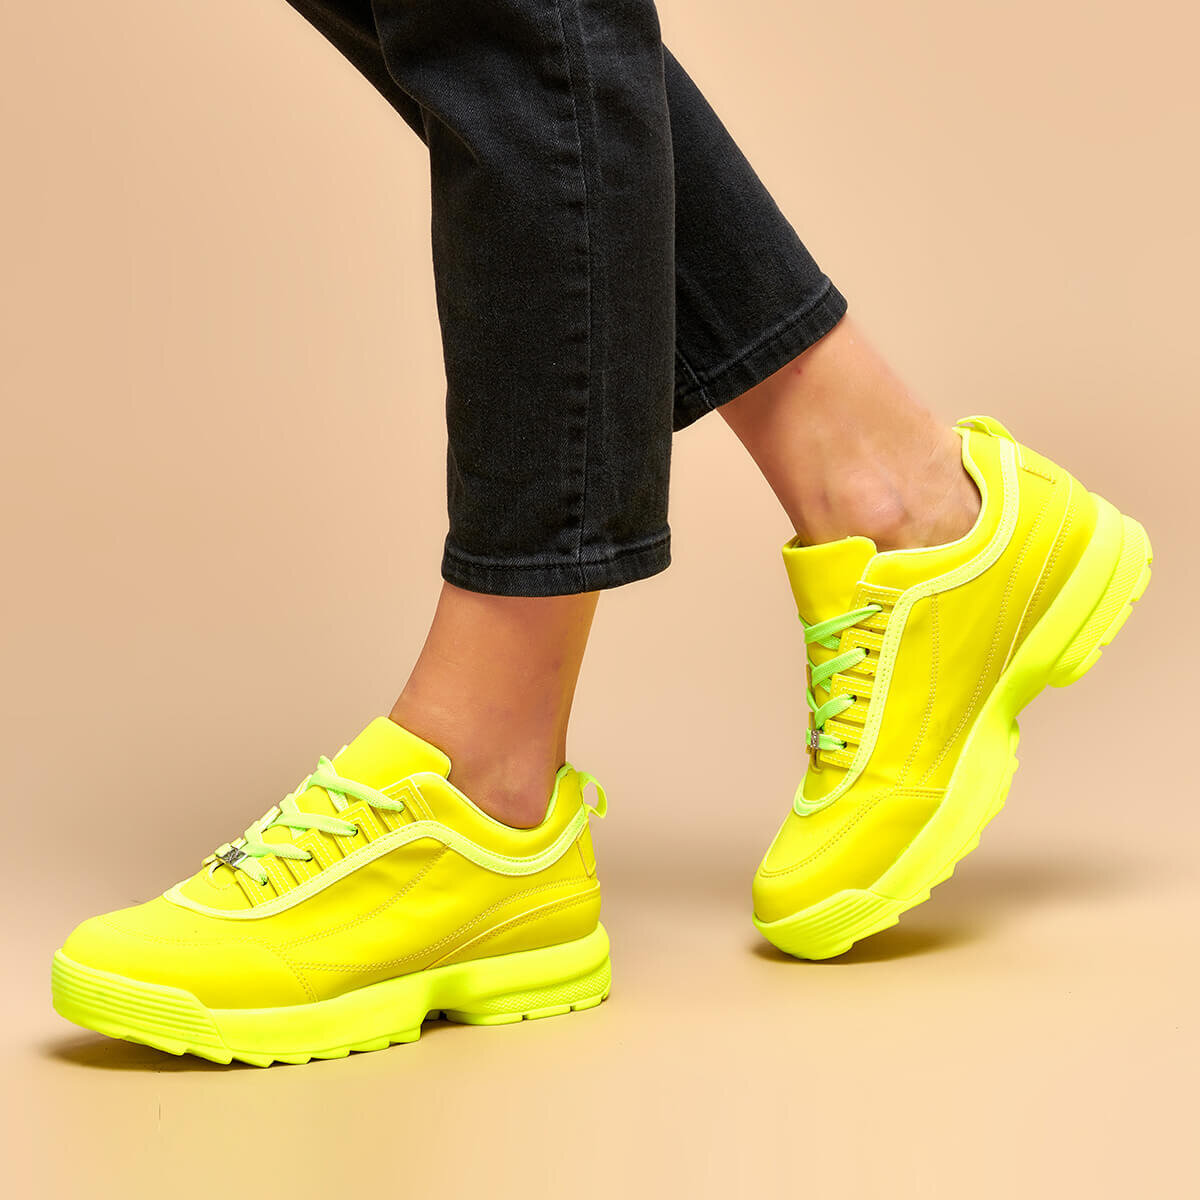 FLO Neon Yellow Women Sneaker Women Chunky Sneakers Platform Ladies Casual Vulcanize Shoes Celebrity Dad Female Fashion Sneakers Designer BUTIGO 19K-950